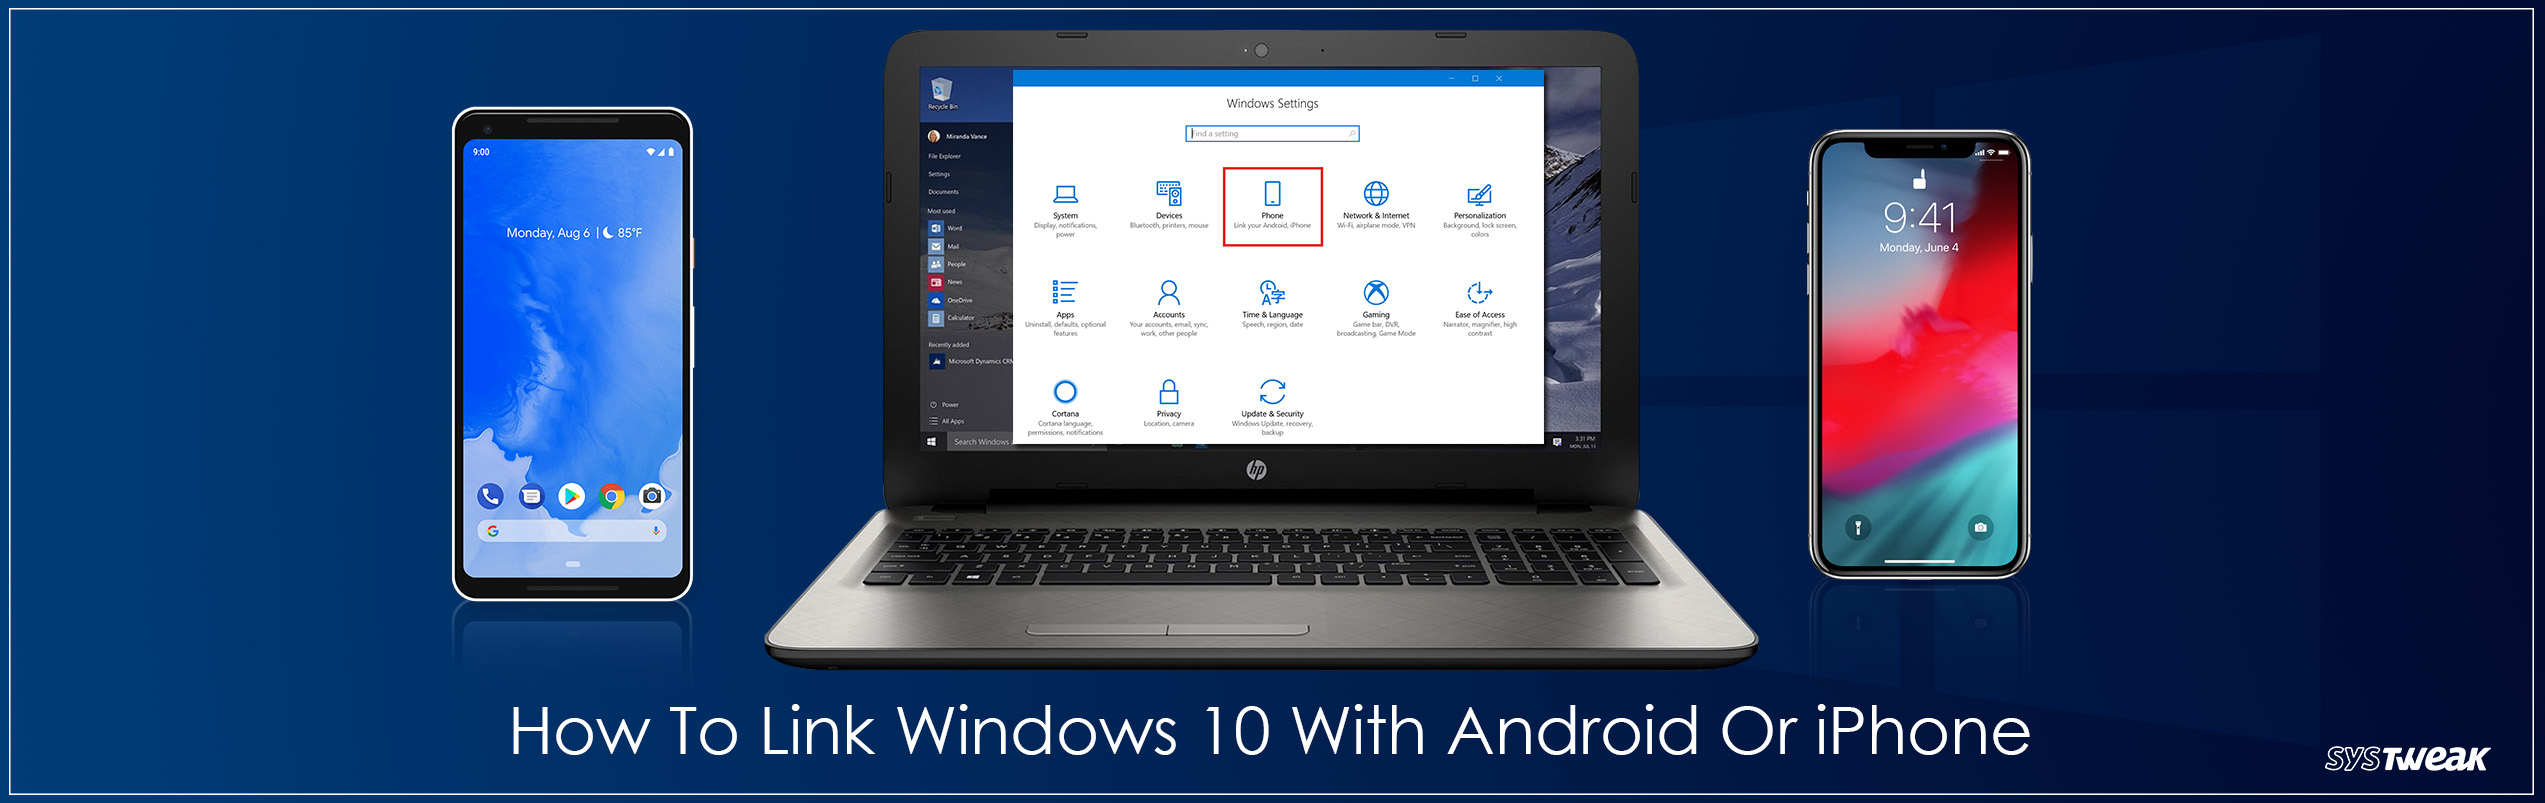 7 Things You can Do by Linking Windows 10 with Your Smartphone